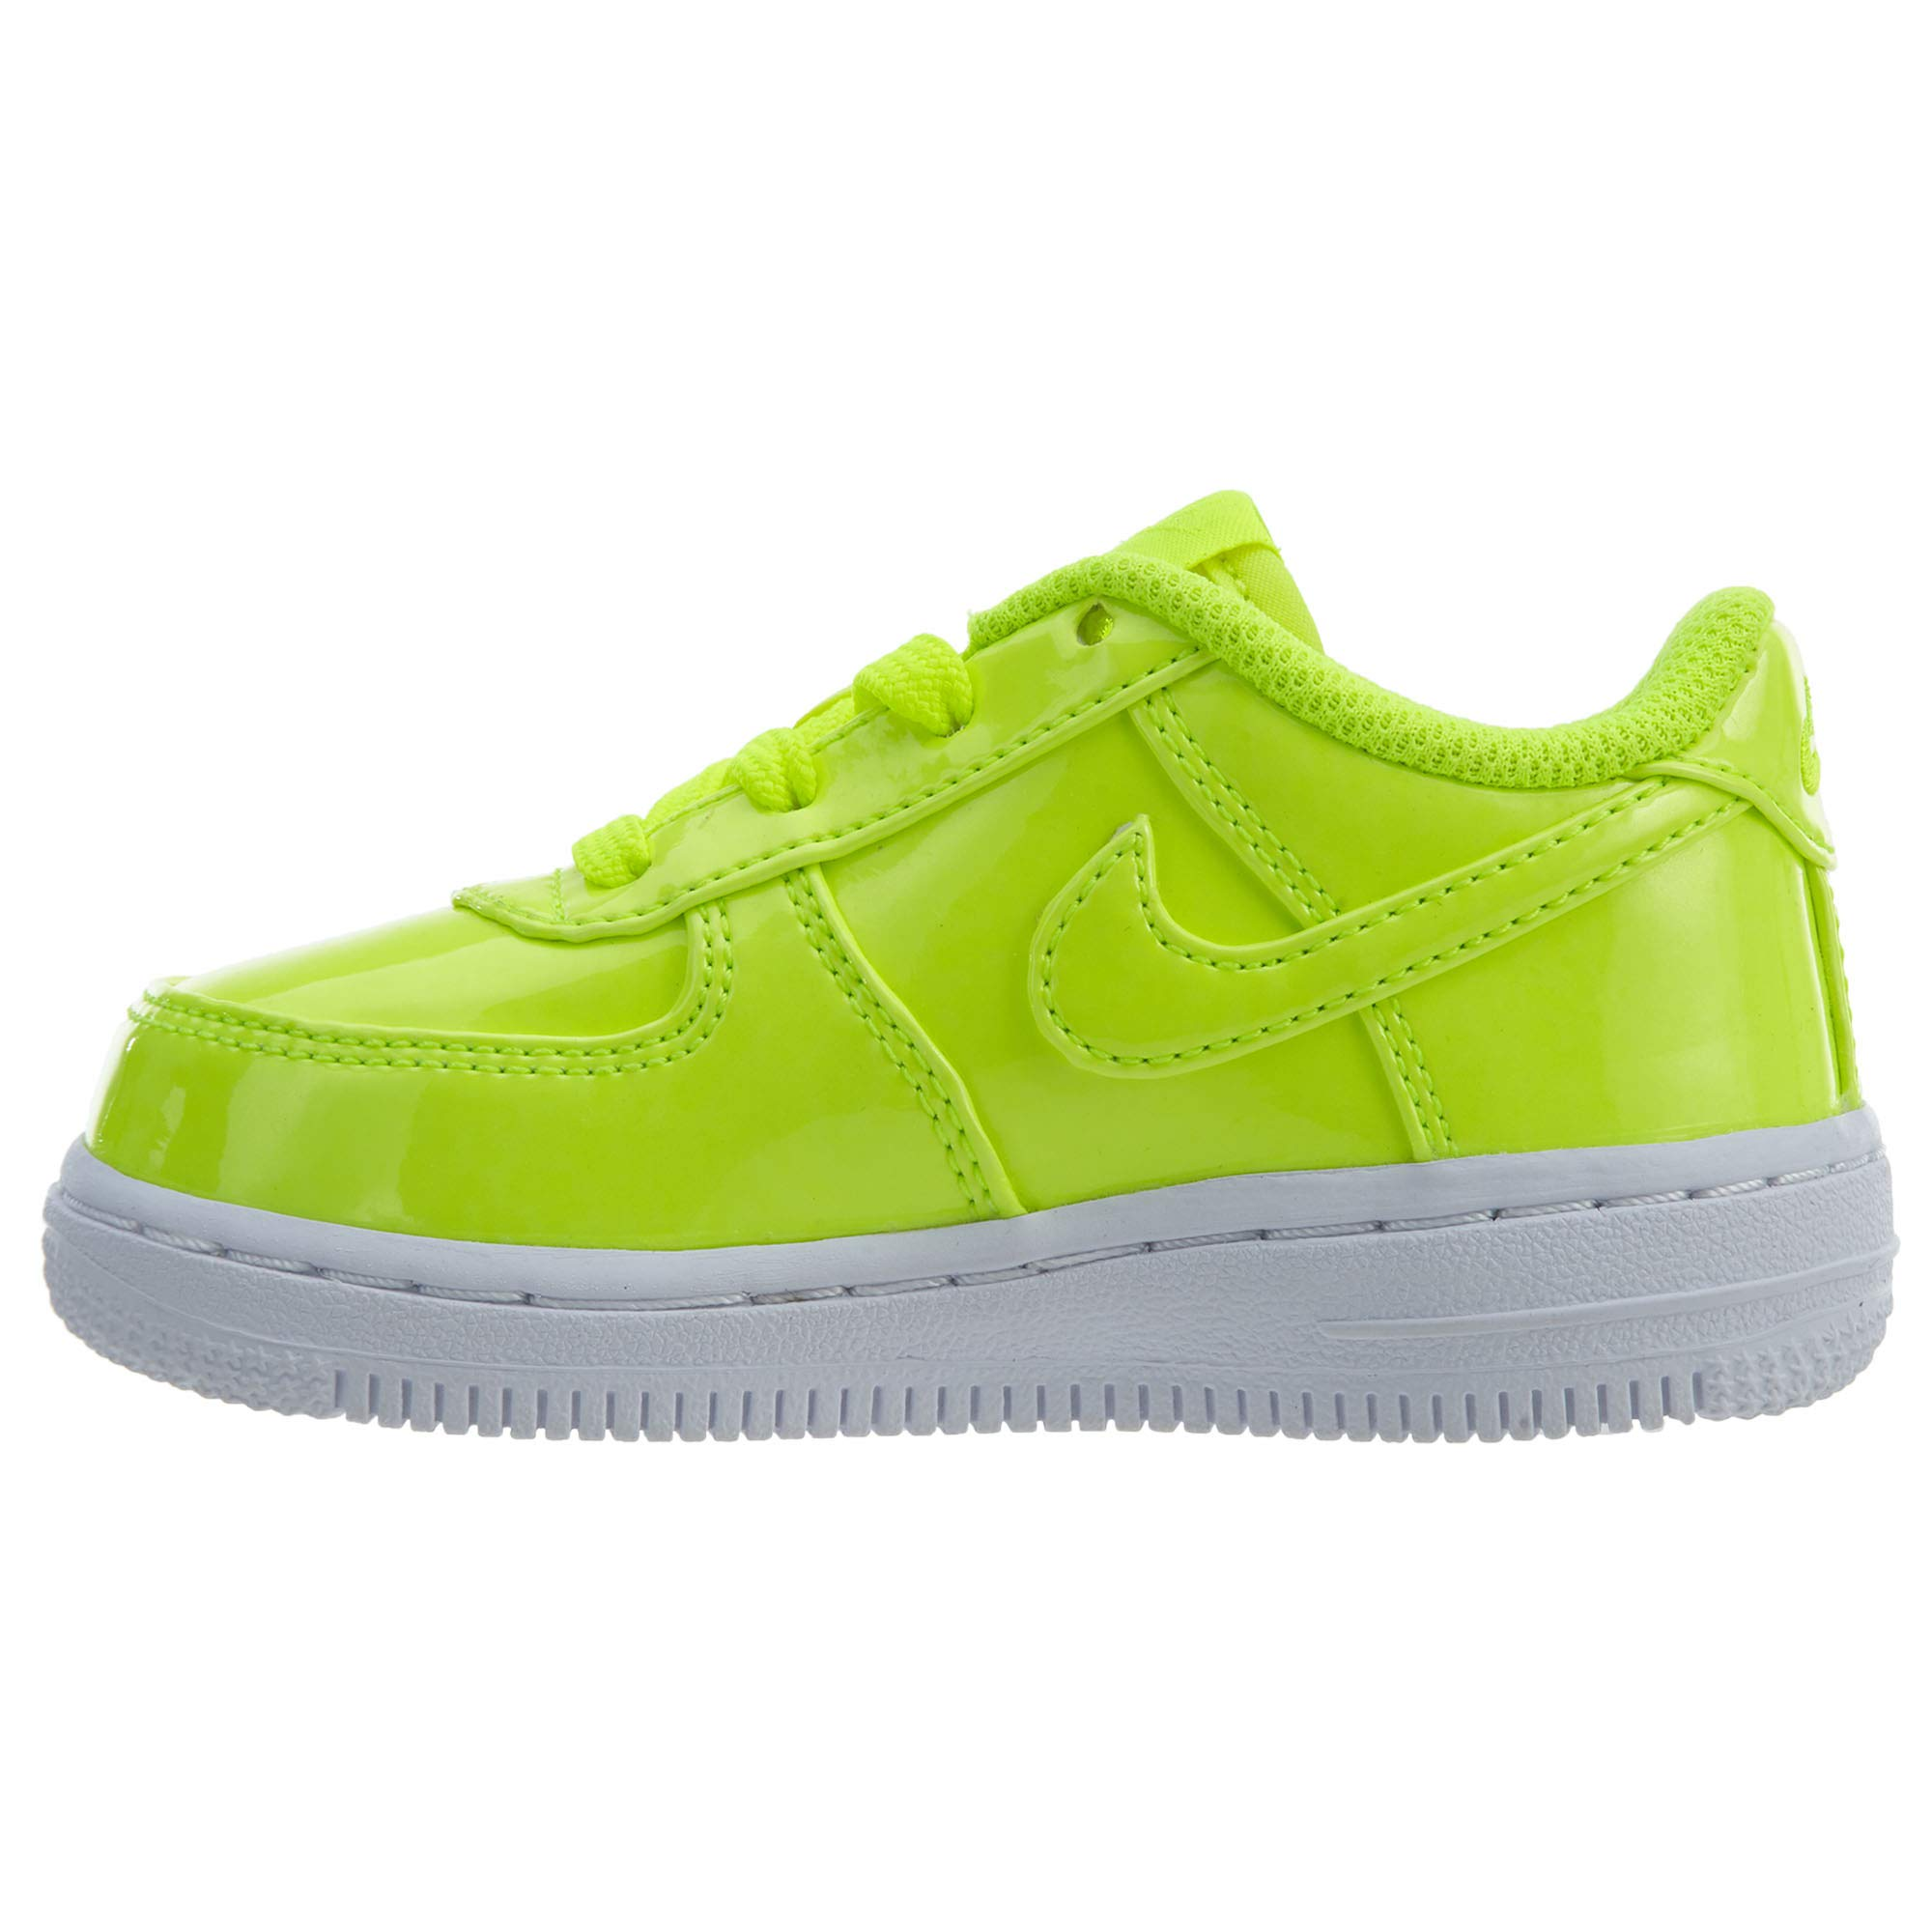 Nike Force 1 Lv8 Uv Toddlers Style: AO2288-700 Size: 6 by Nike (Image #4)